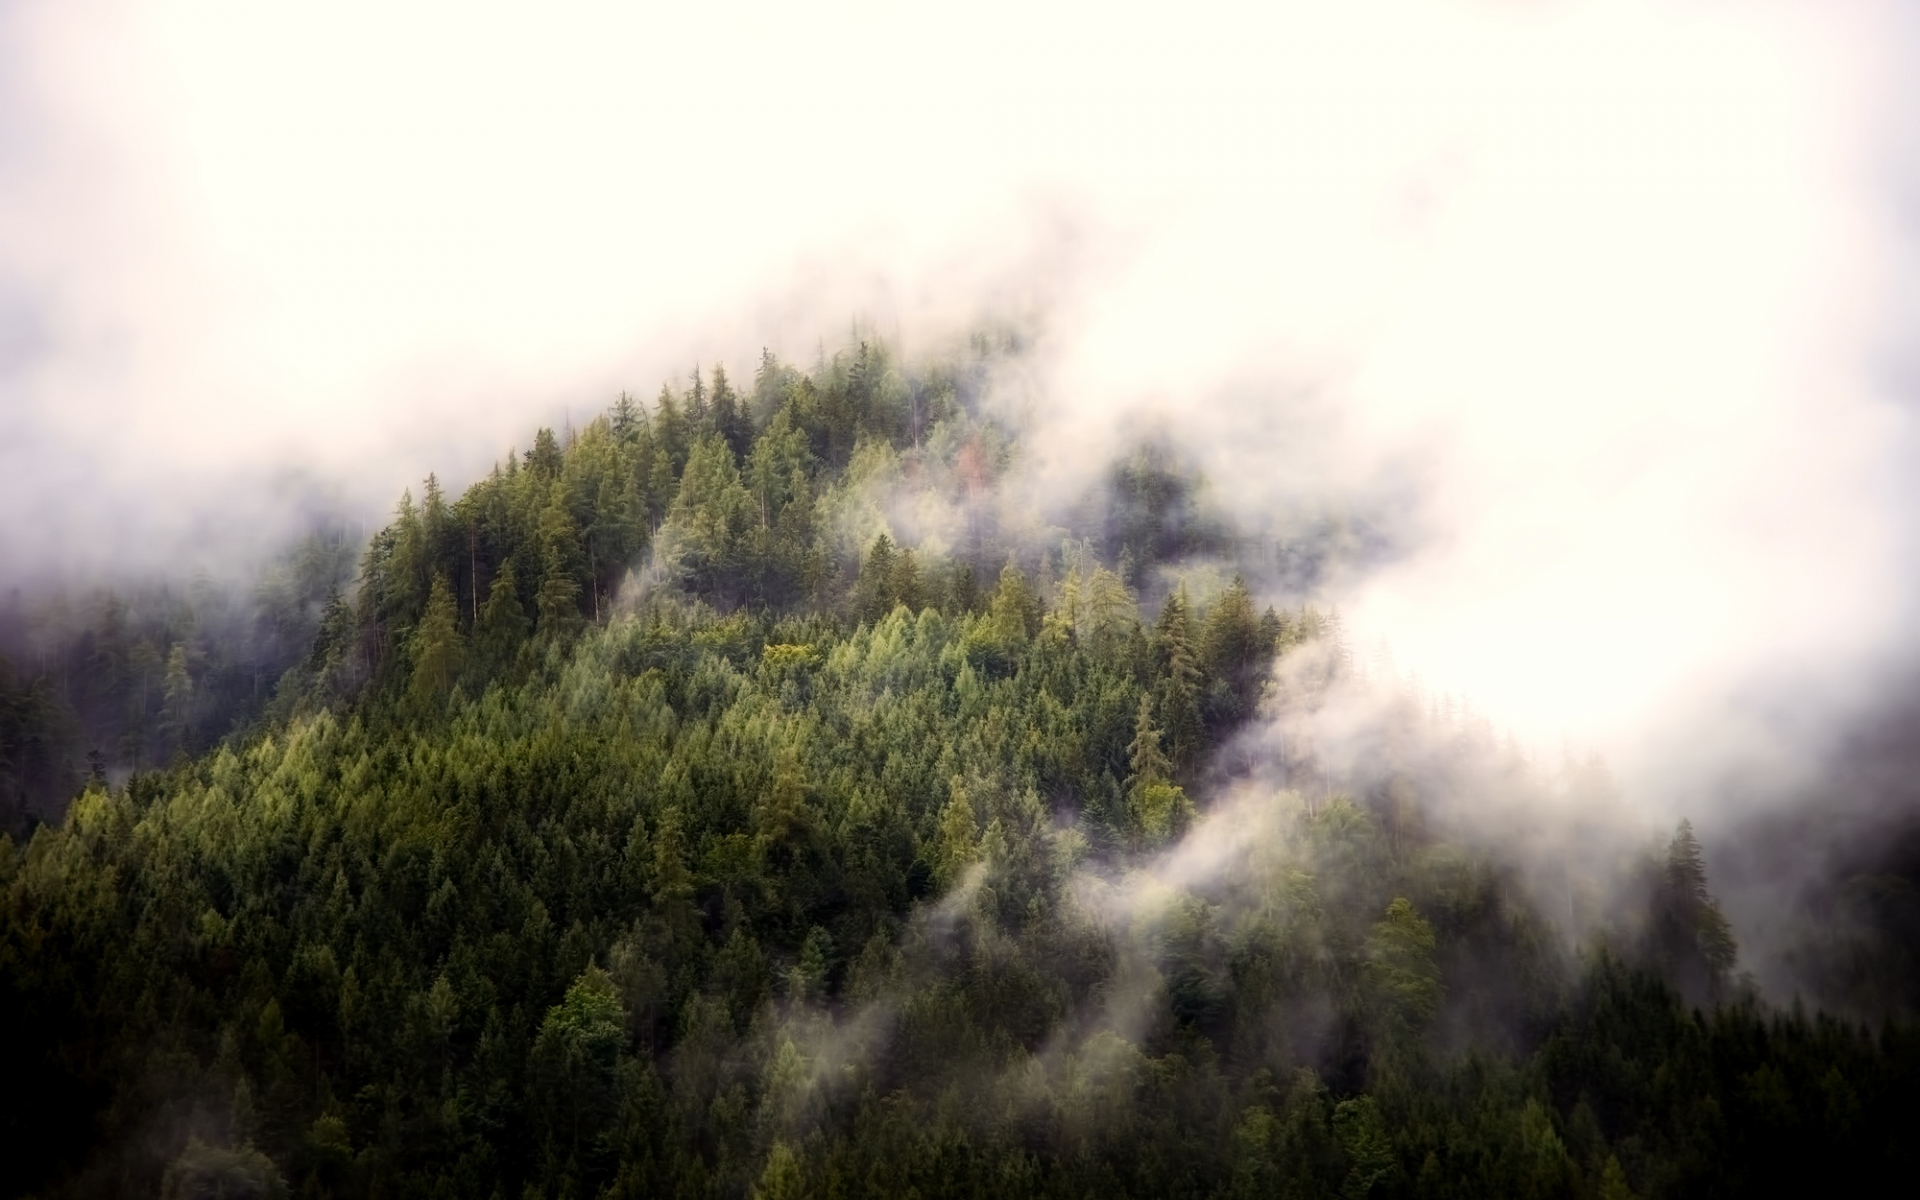 1920x1200 wallpaper Fog, aerial view, forest, nature, trees